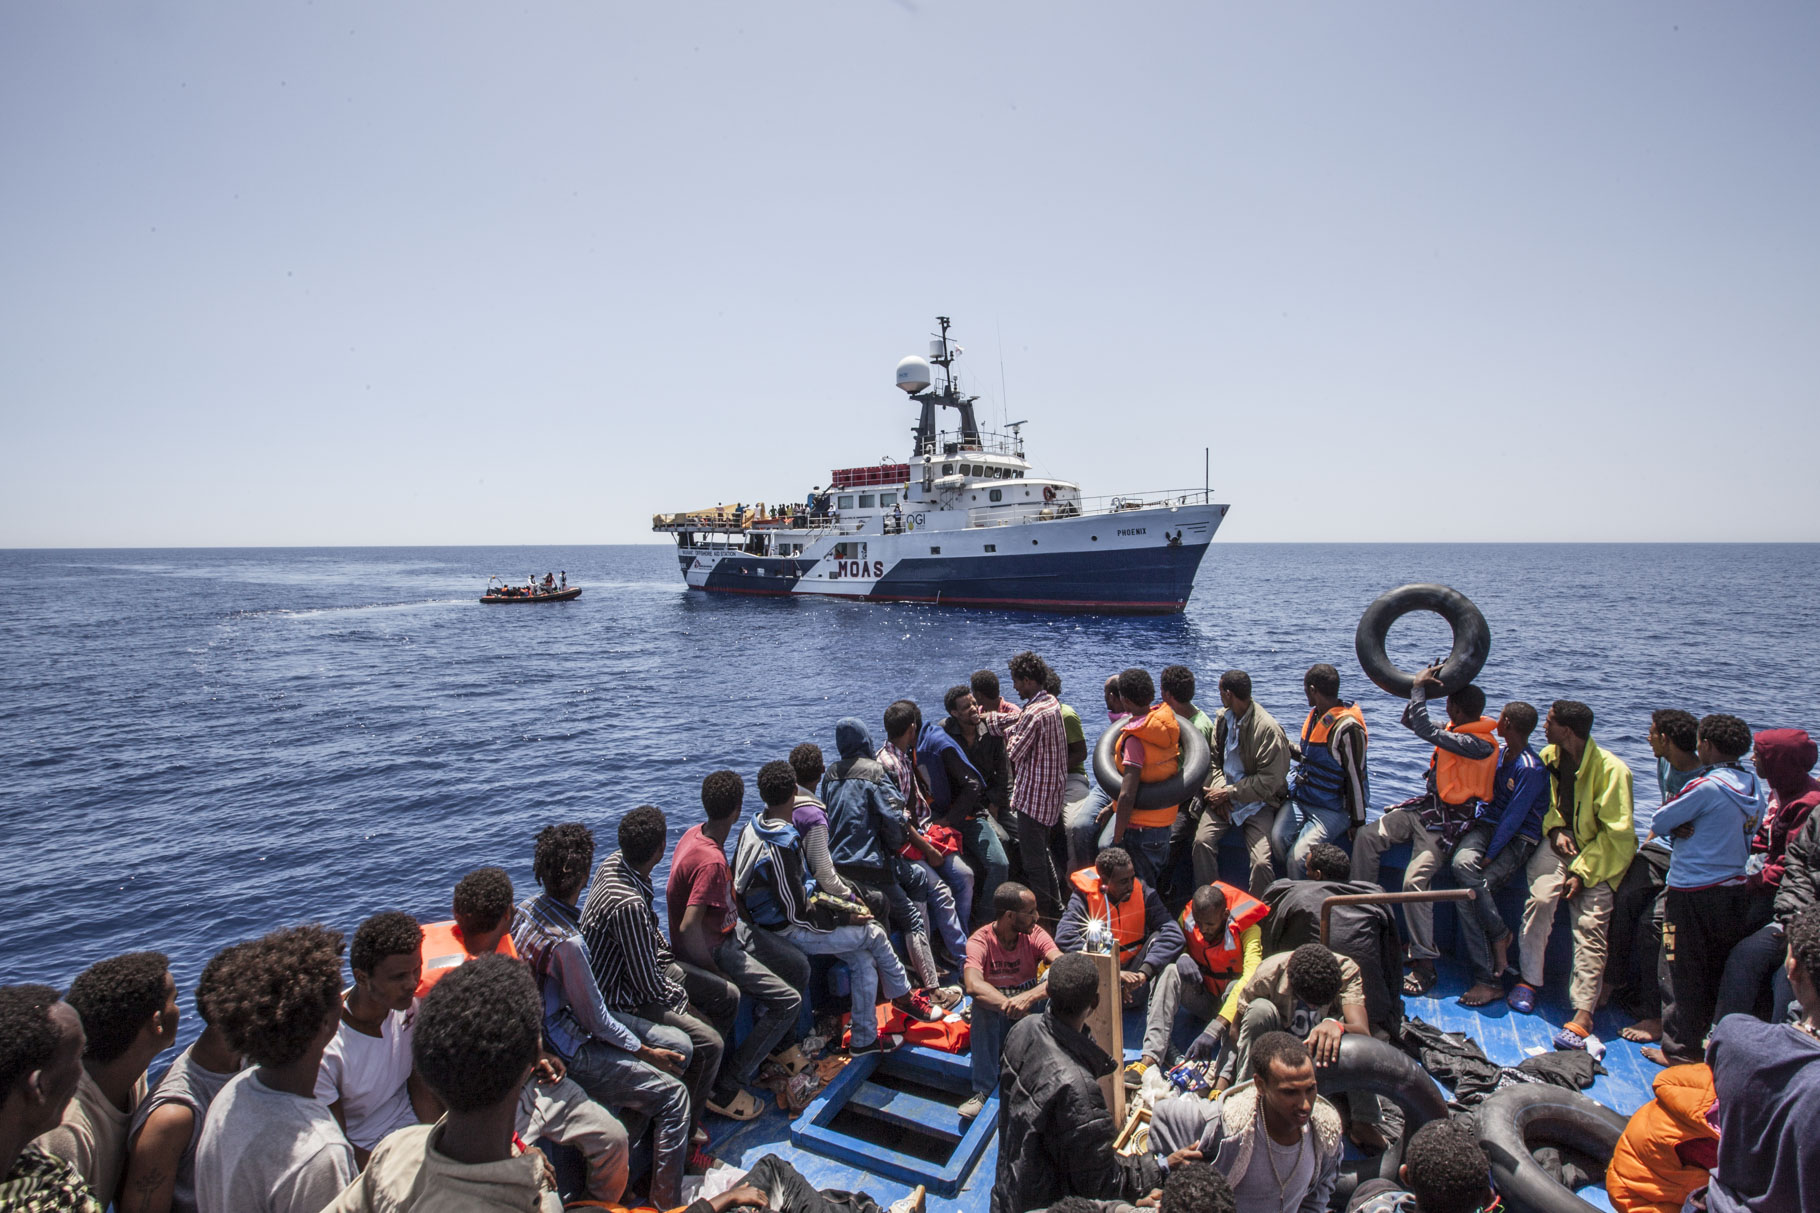 Migrant rescues in the Mediterranean sea